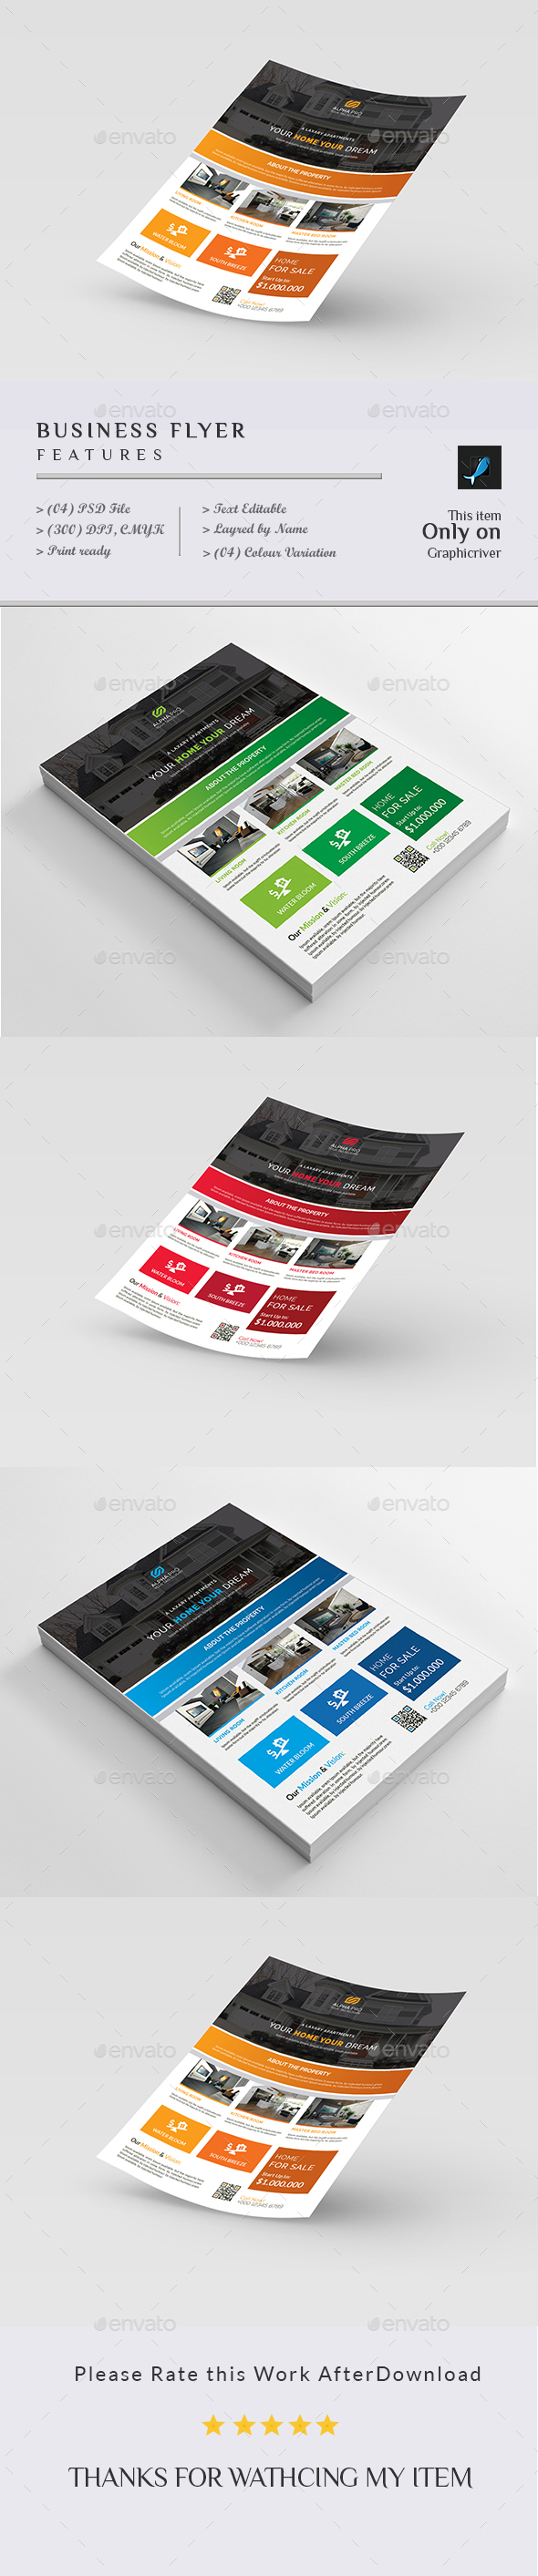 Real estate business flyer business cards pinterest real estate business flyer reheart Choice Image